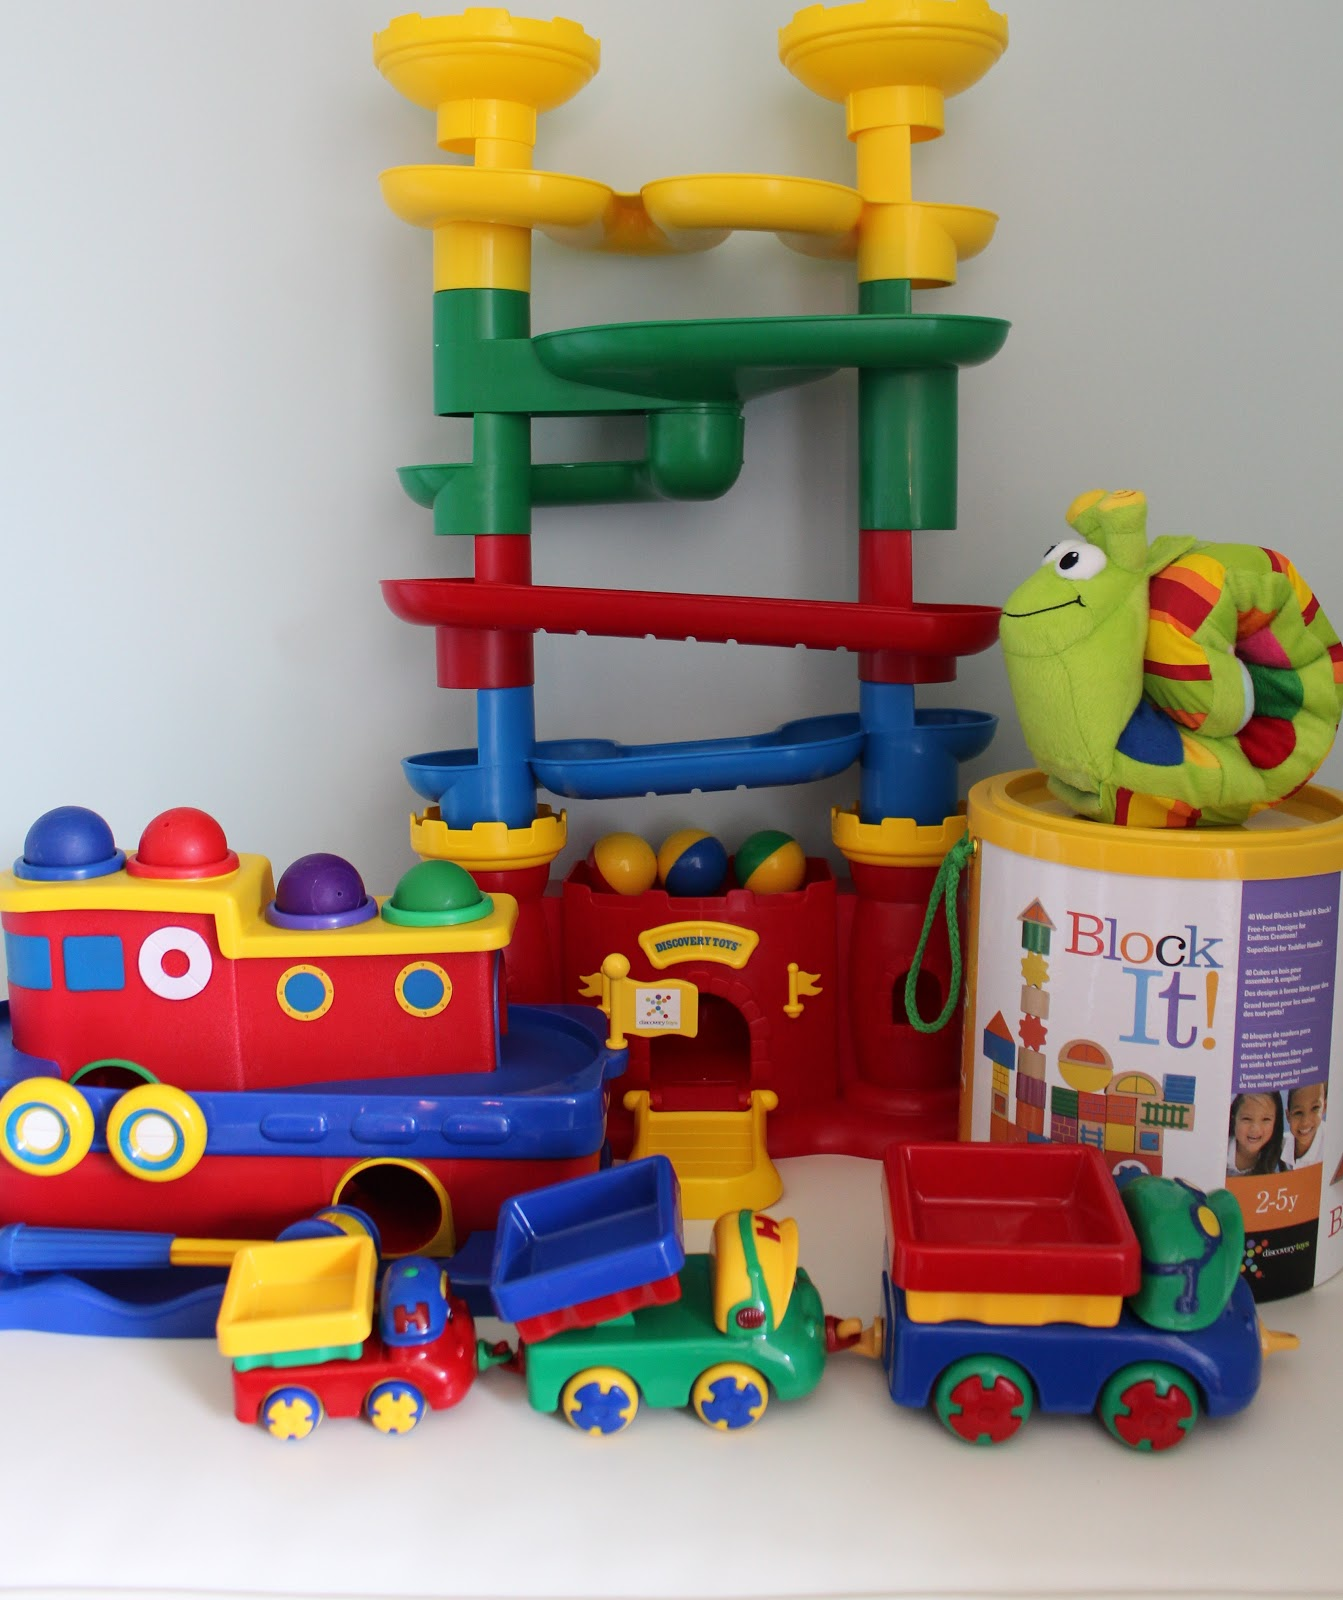 Dicovery Toys 94